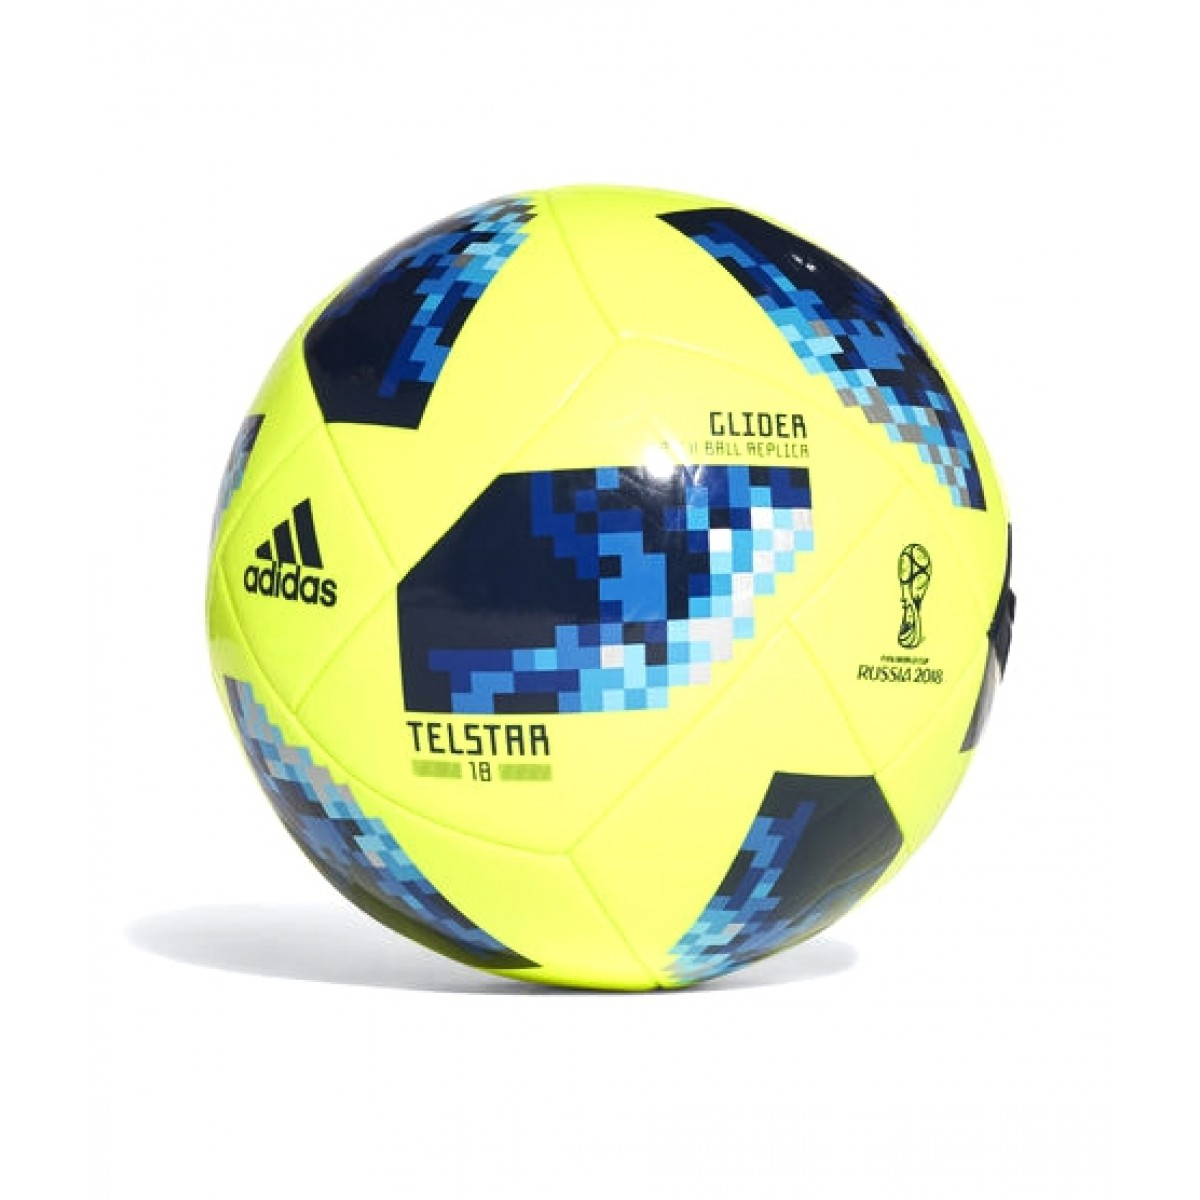 cb9563edb19 Football Mart Telstar Glider FIFA World Cup 2018 Football - Size 5 - Yellow  Price in Pakistan